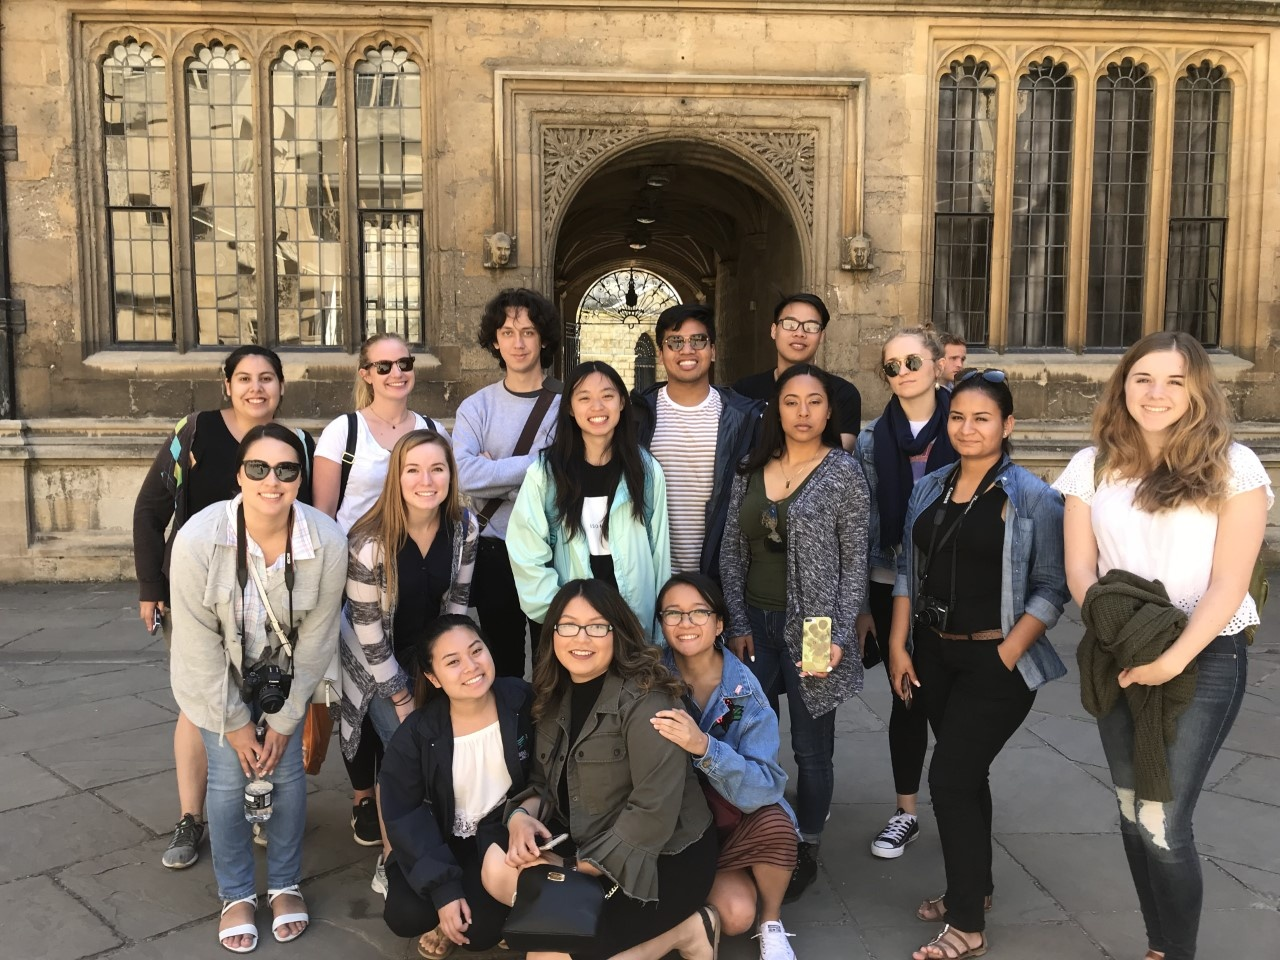 Group Photo of Students in Oxford in front of Church